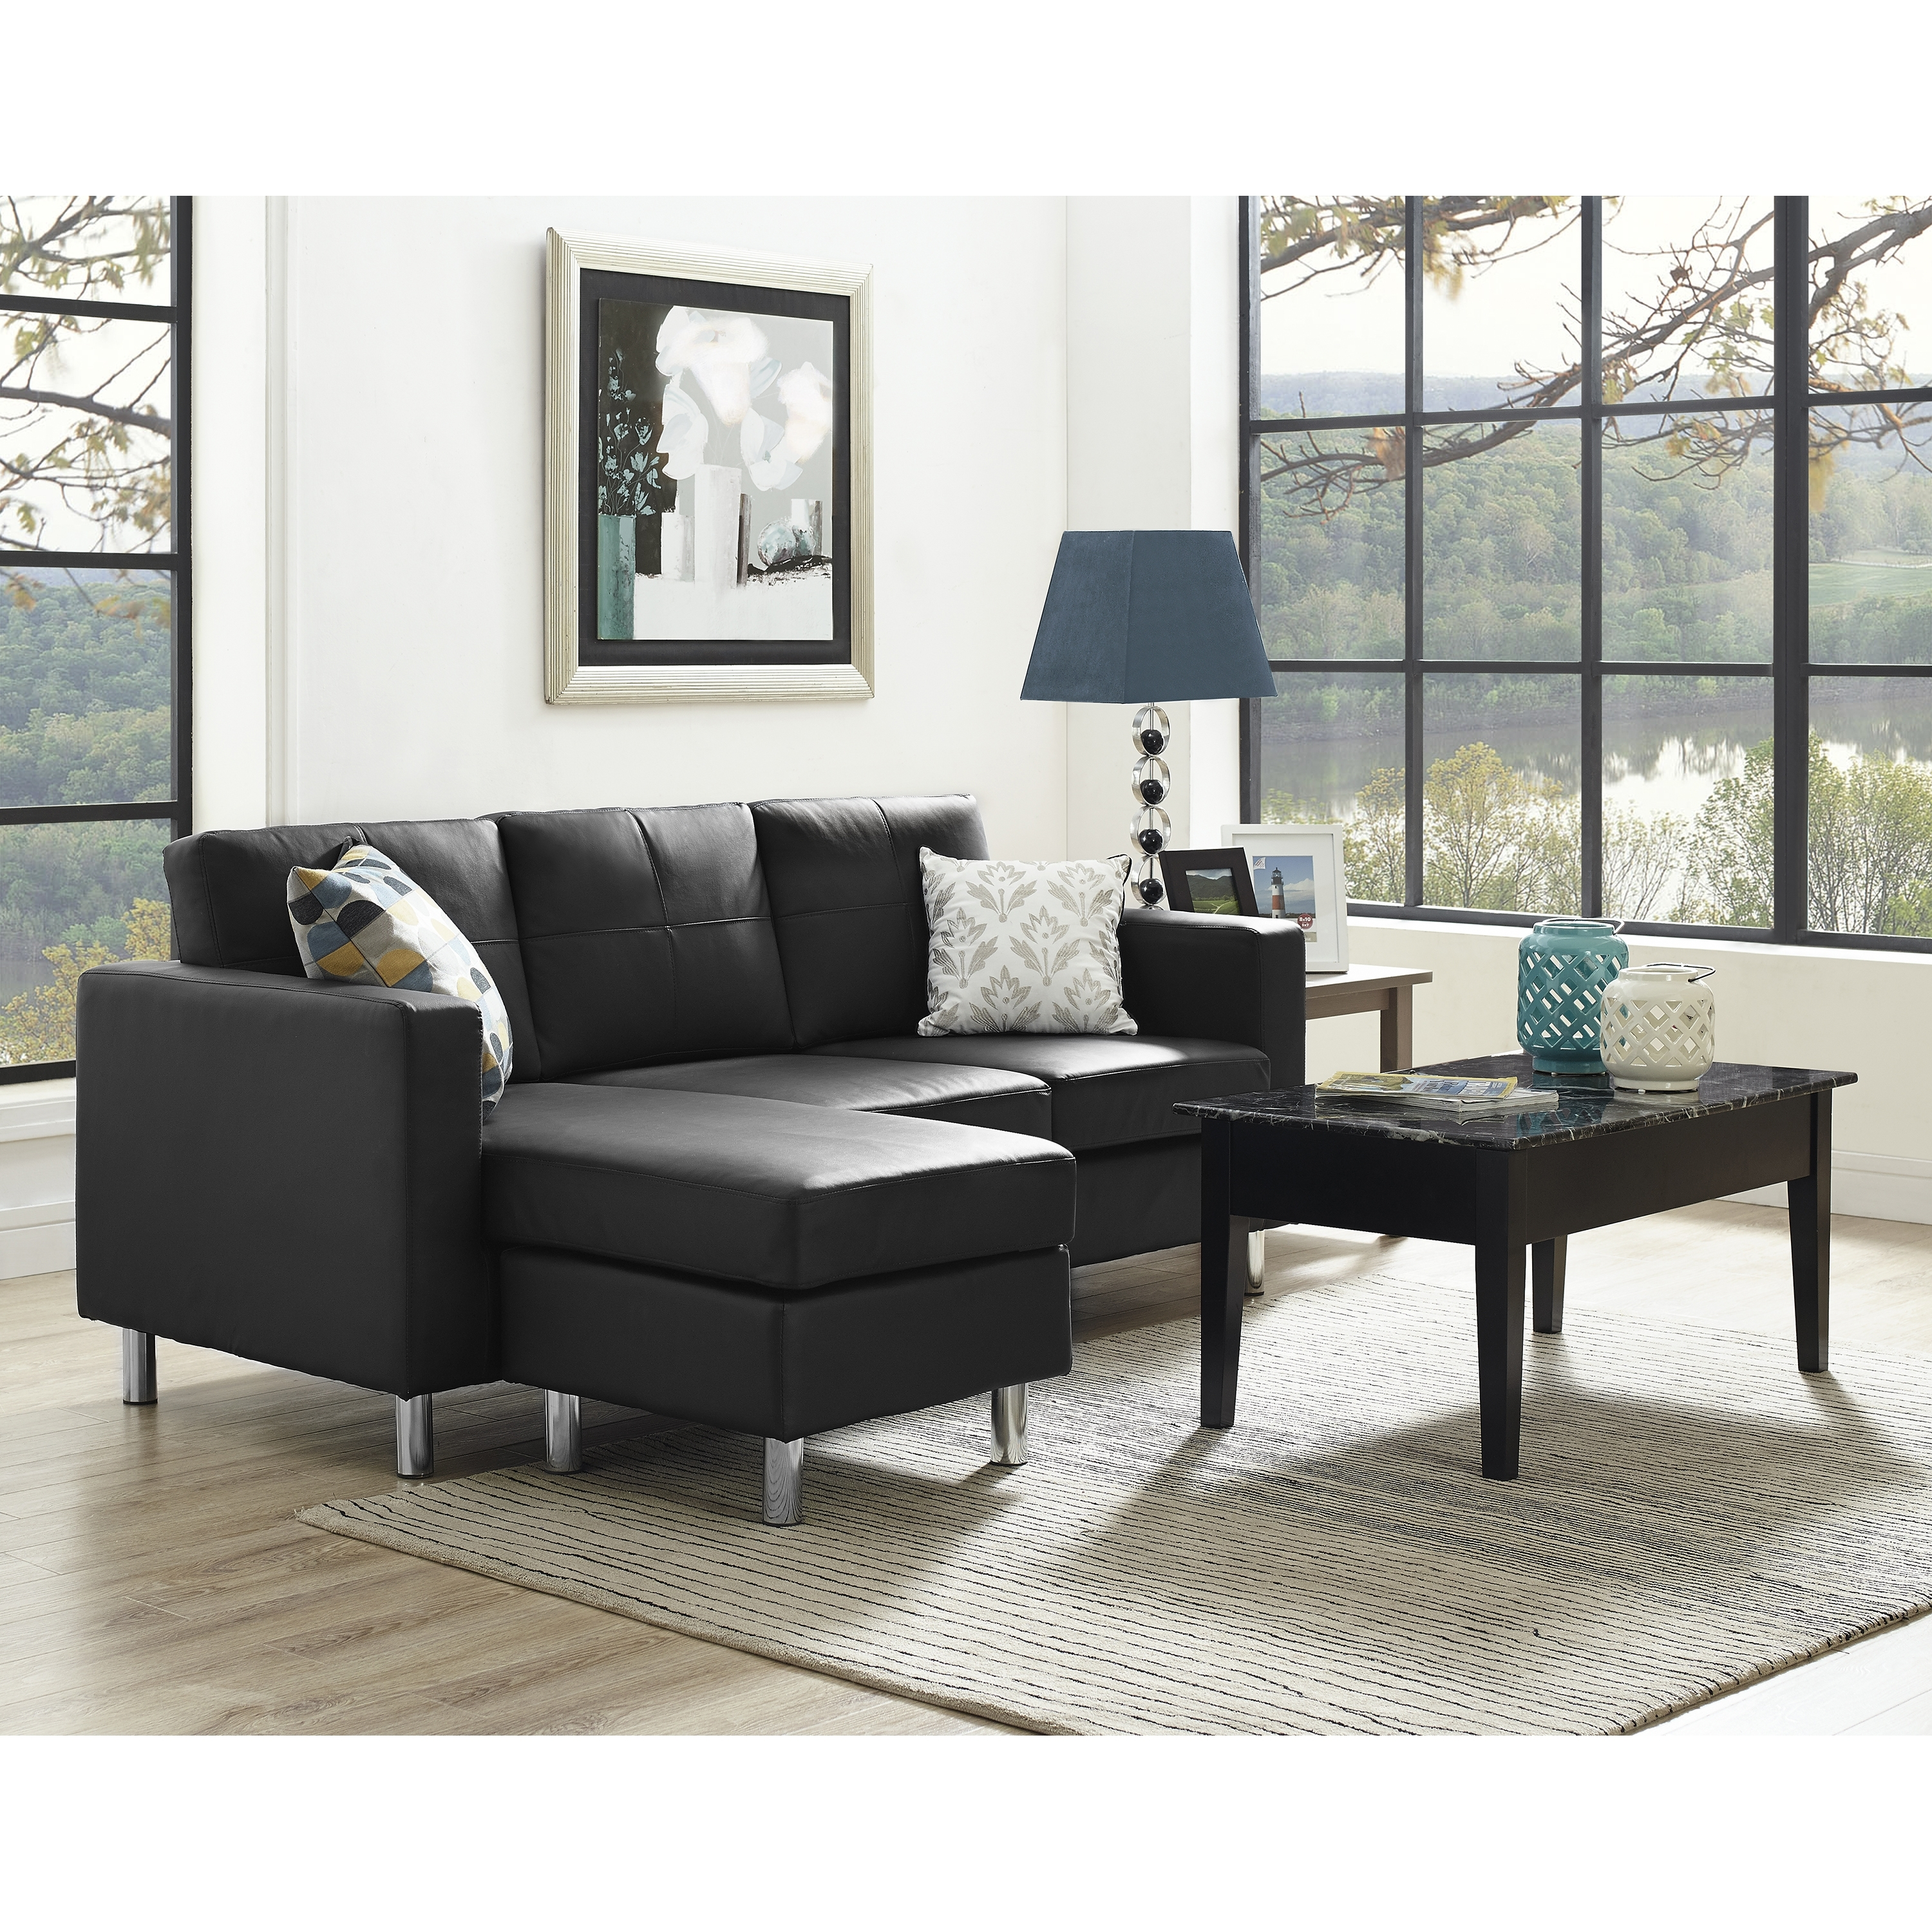 Best Sears Sectional Sofa 79 In Costco Leather Sectional Sofa With Within Sectional Sofas At Sears (View 1 of 15)